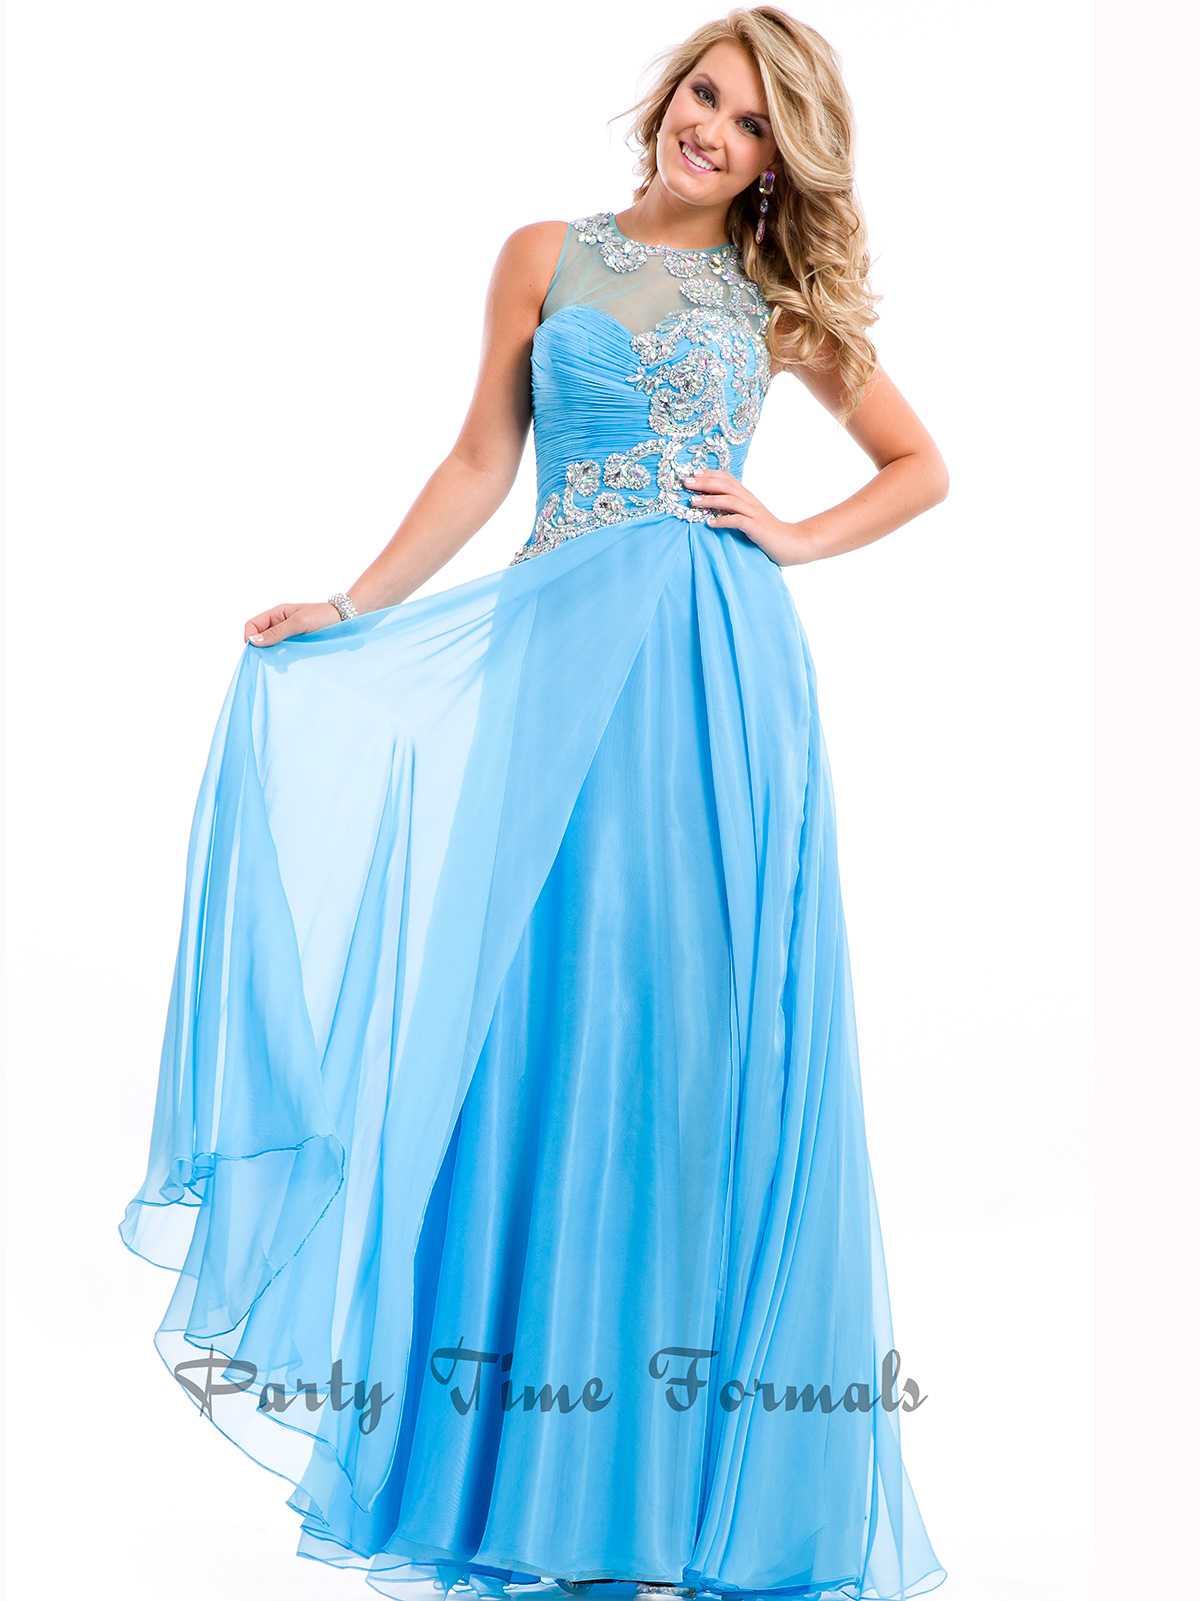 Party Time Formal Prom Dresses - Long Dresses Online